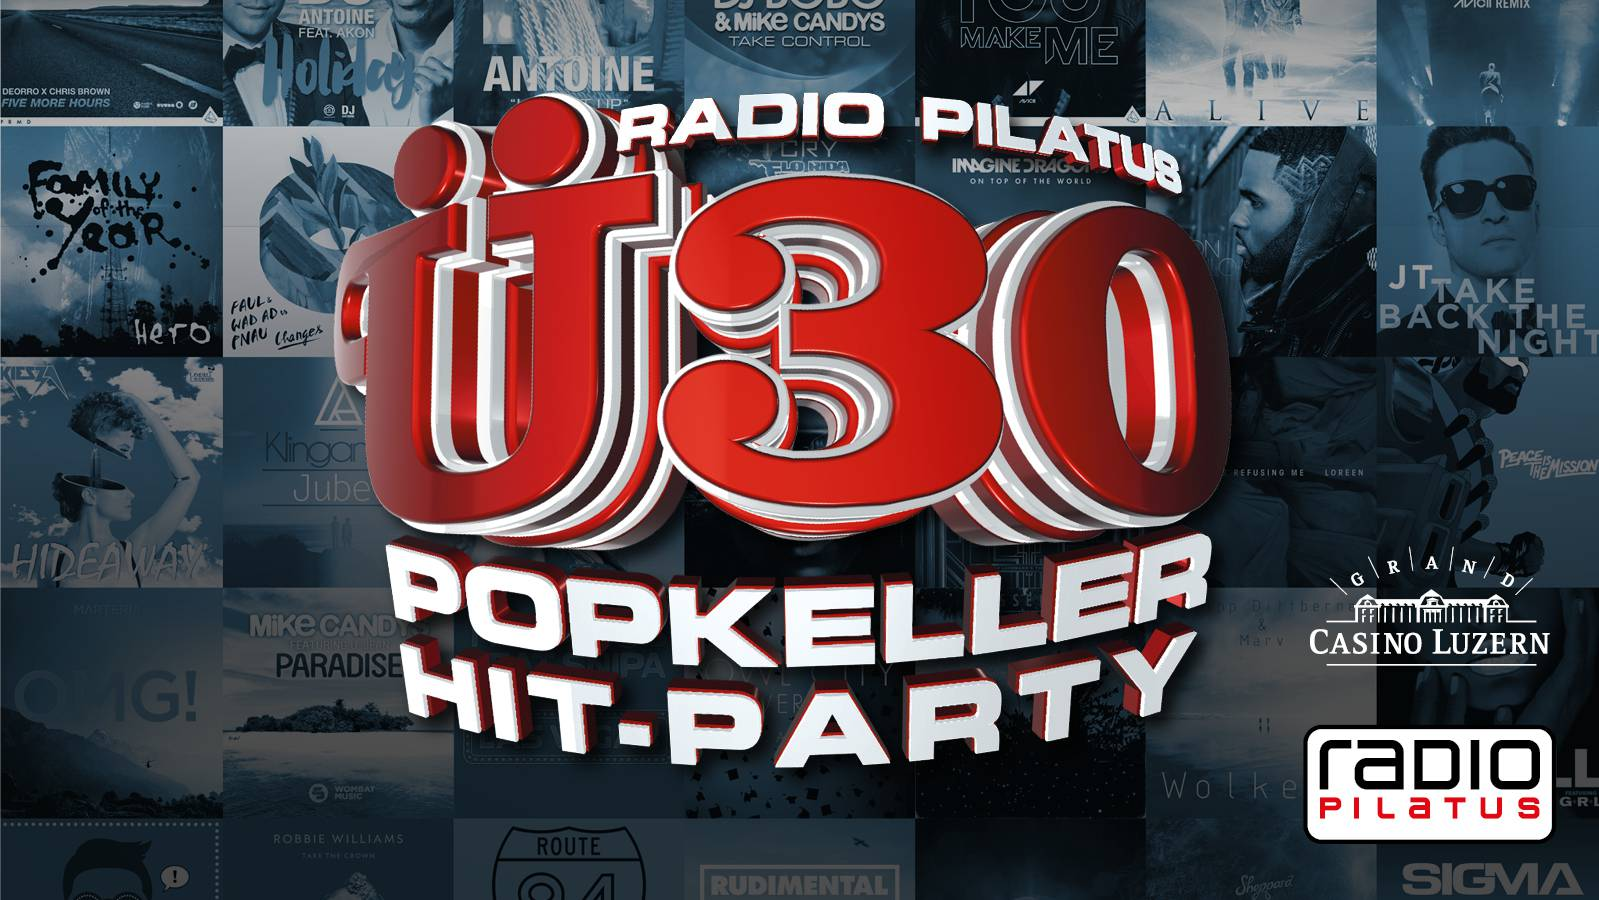 RADIO PILATUS Ü30 POPKELLER HIT PARTY